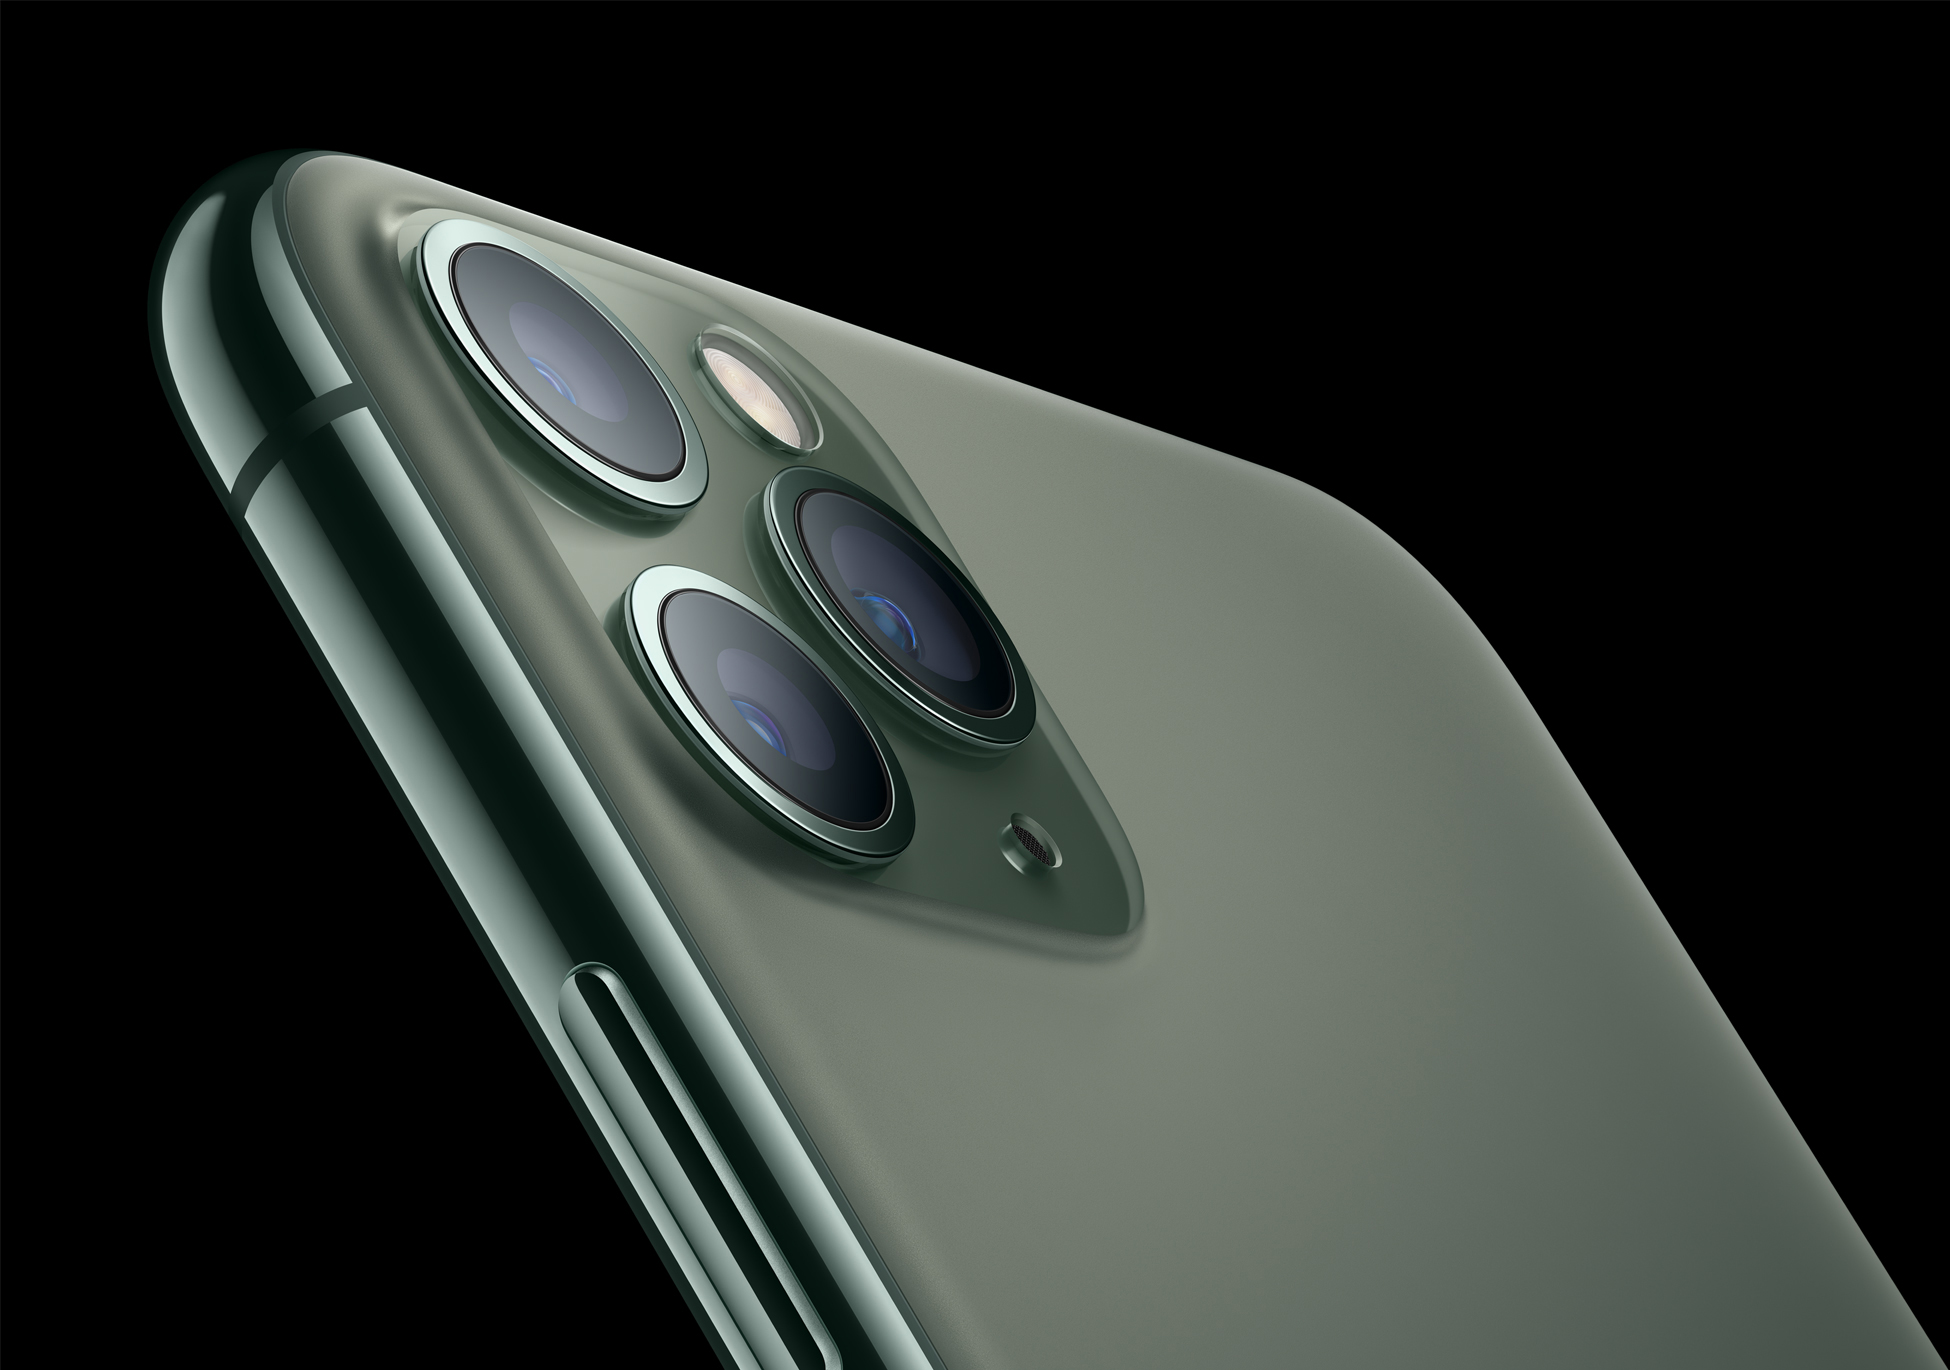 Apple Iphone 11 Pro Exploring The New Camera Features